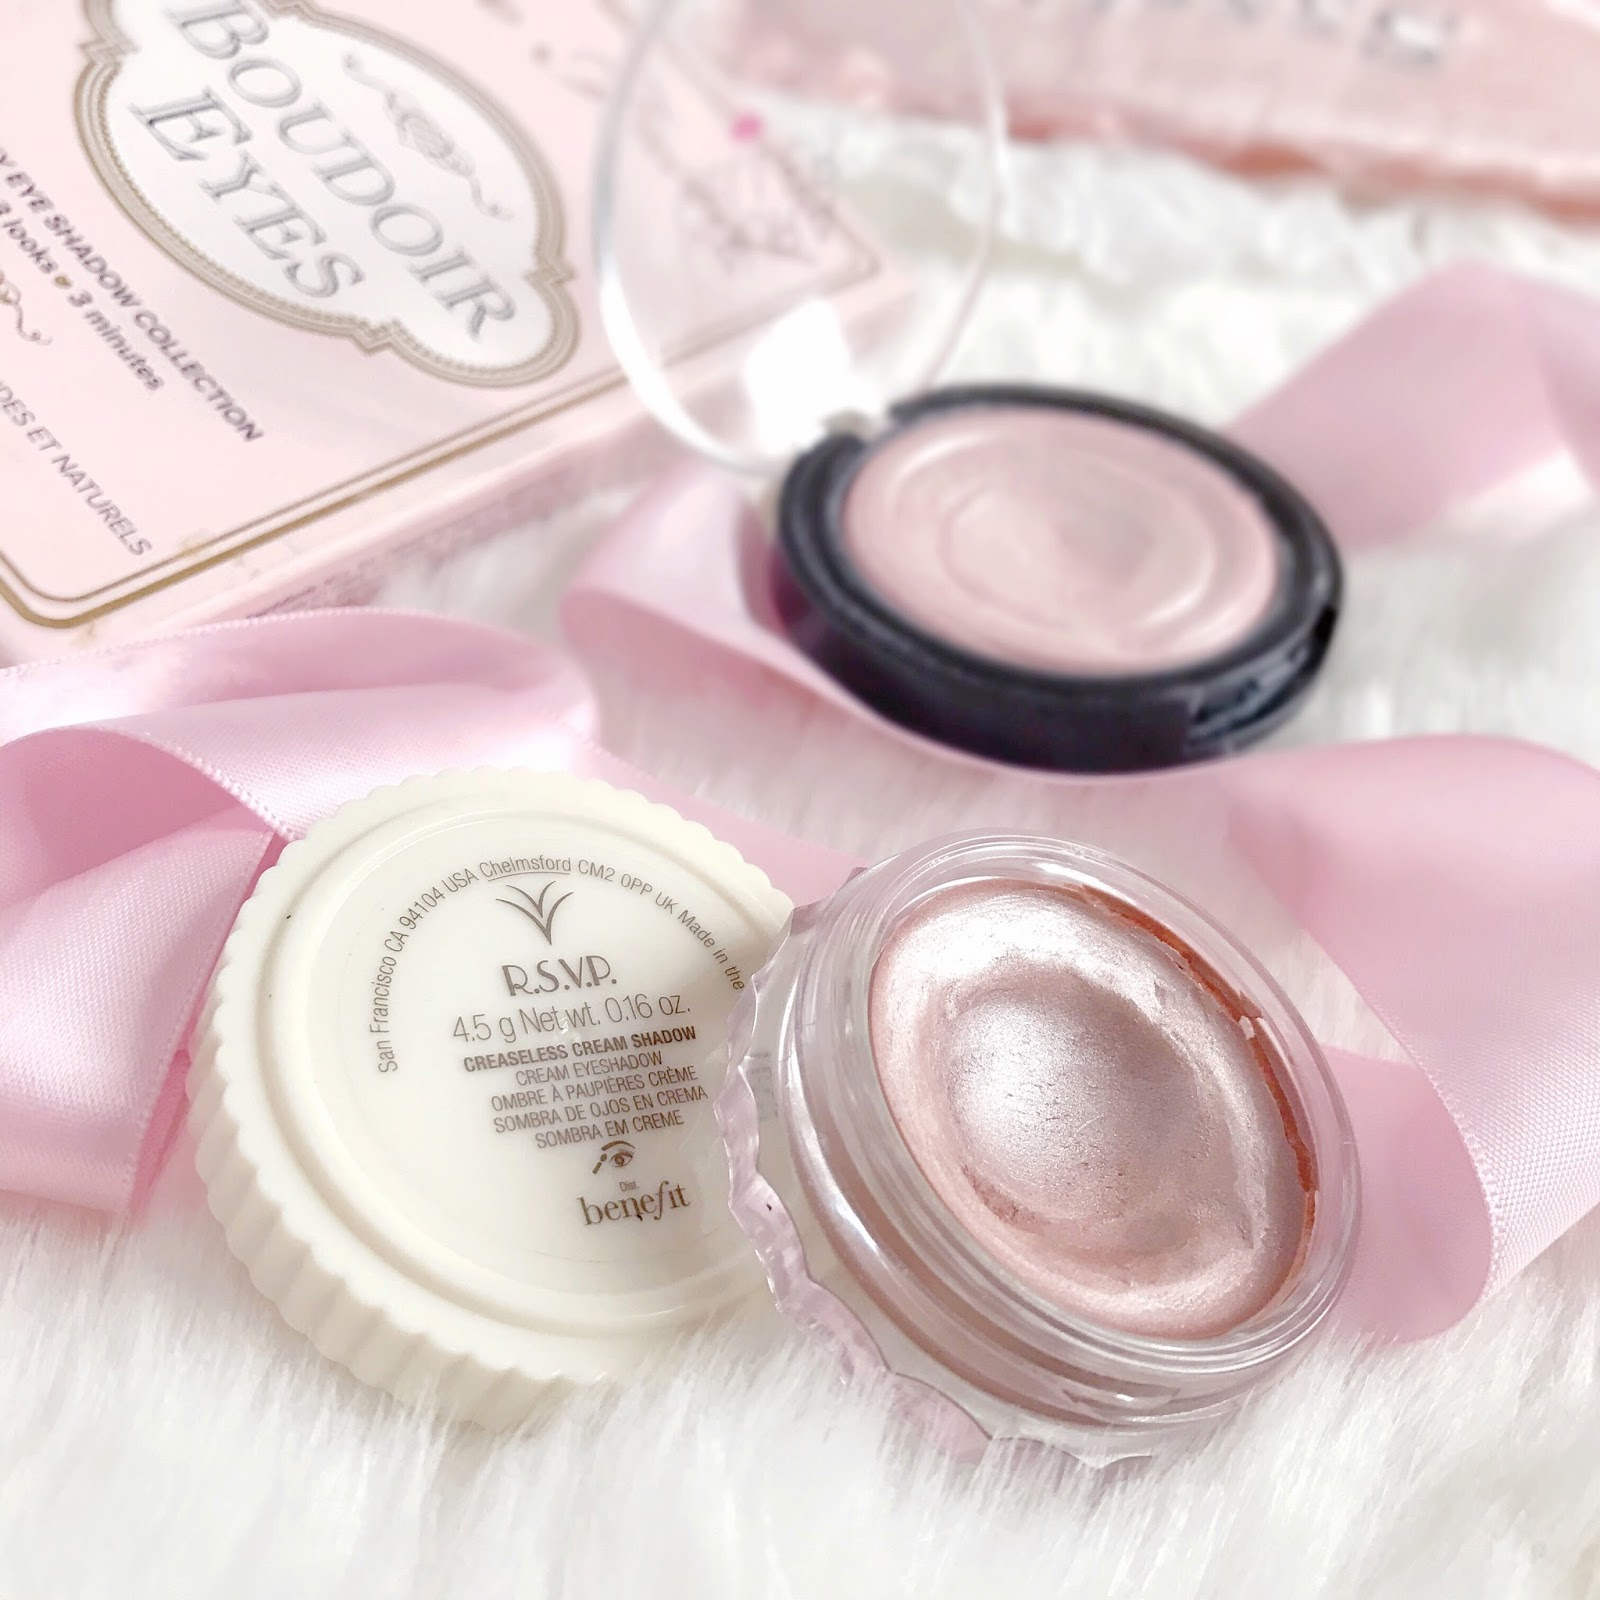 Four Champagne Pinks To Try | Benefit R.S.V.P Creaseless Cream Eyeshadow